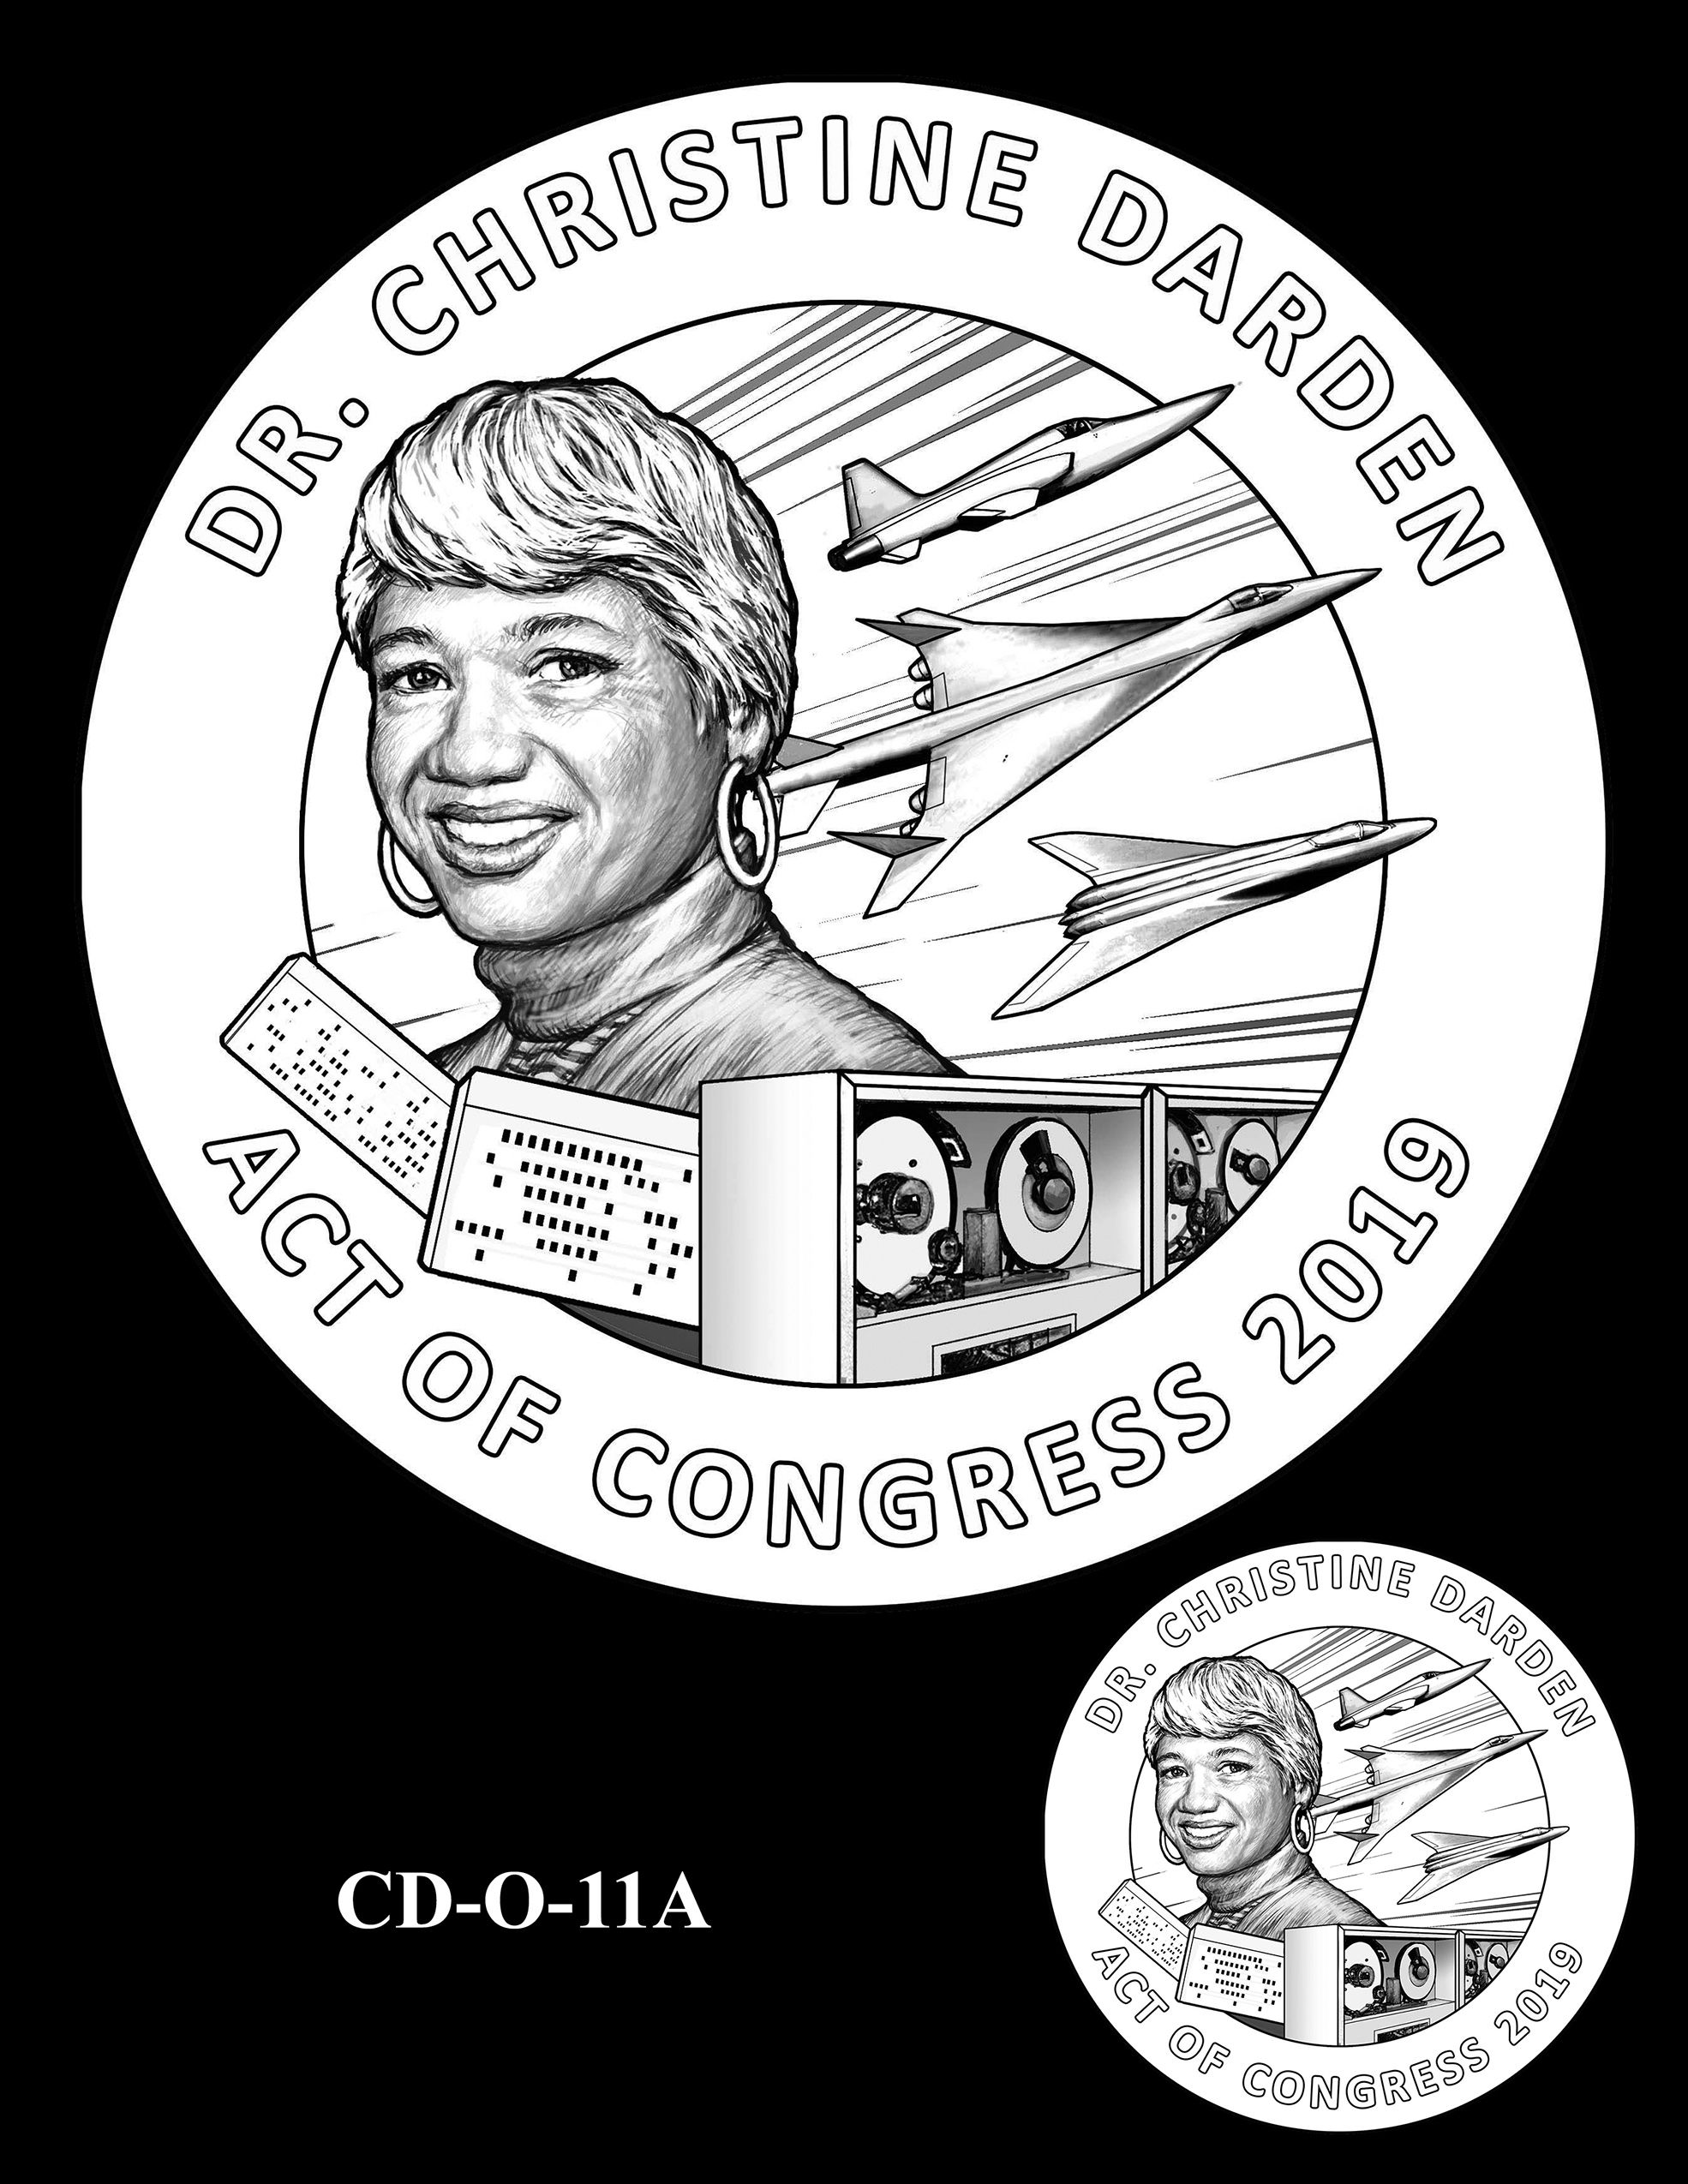 CD-O-11A -- Dr. Christine Darden Congressional Gold Medal